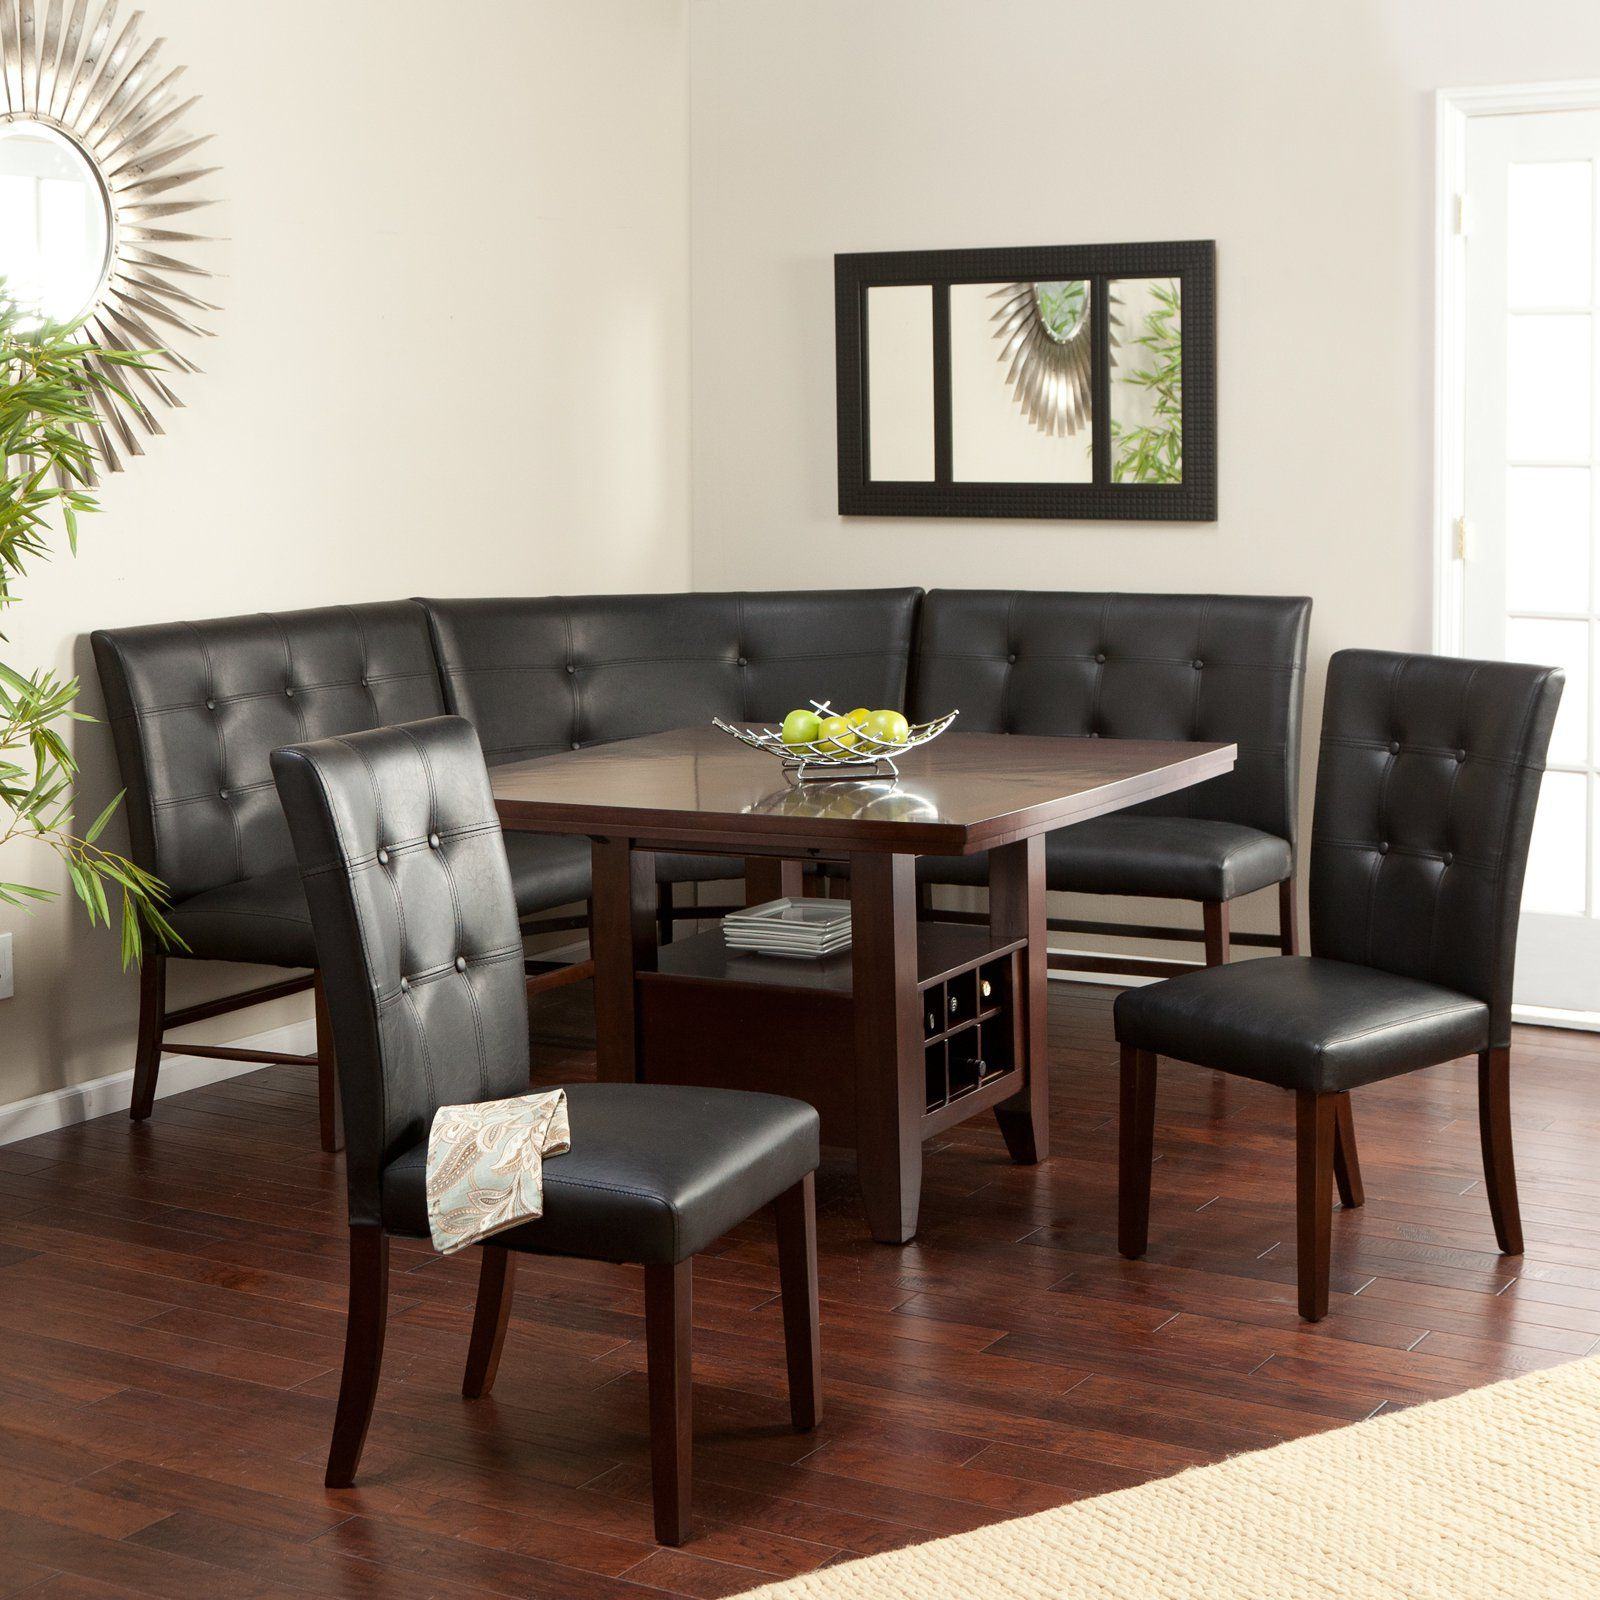 Design Corner Breakfast Nook Furniture have to it layton espresso 6 piece breakfast nook set 899 98